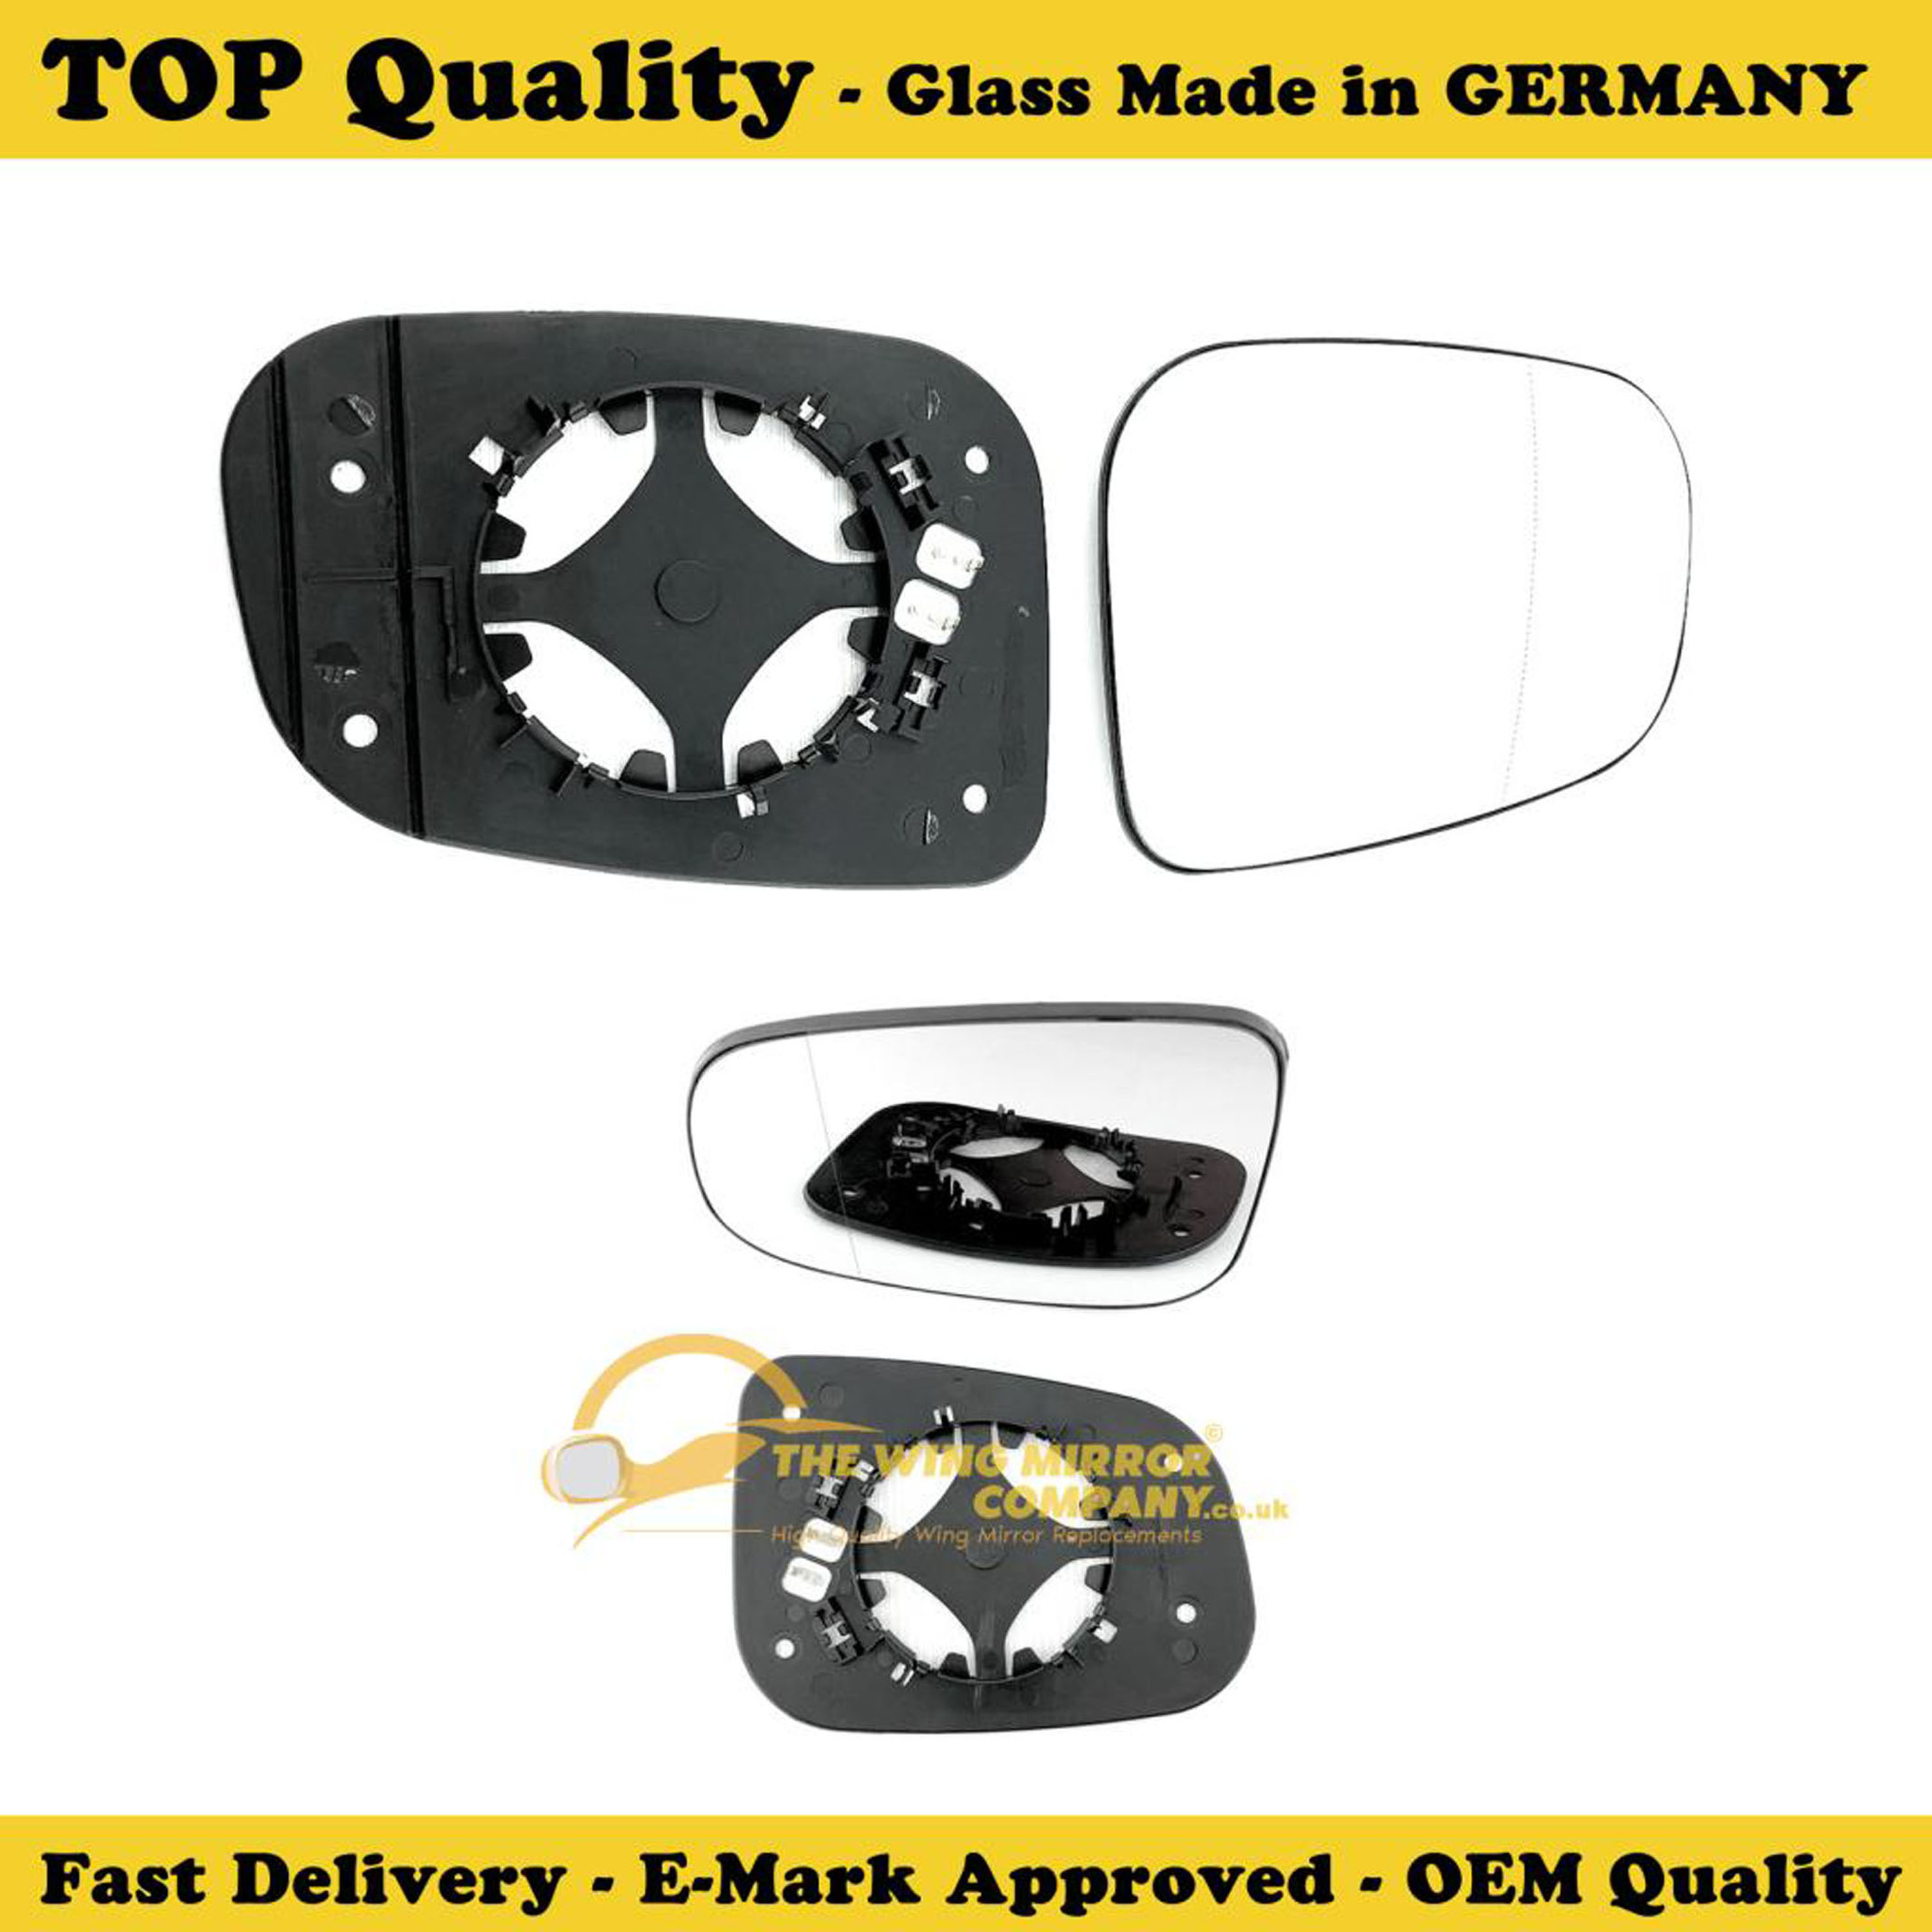 Low Price And High Quality Guarantee On Volvo C30 Driver